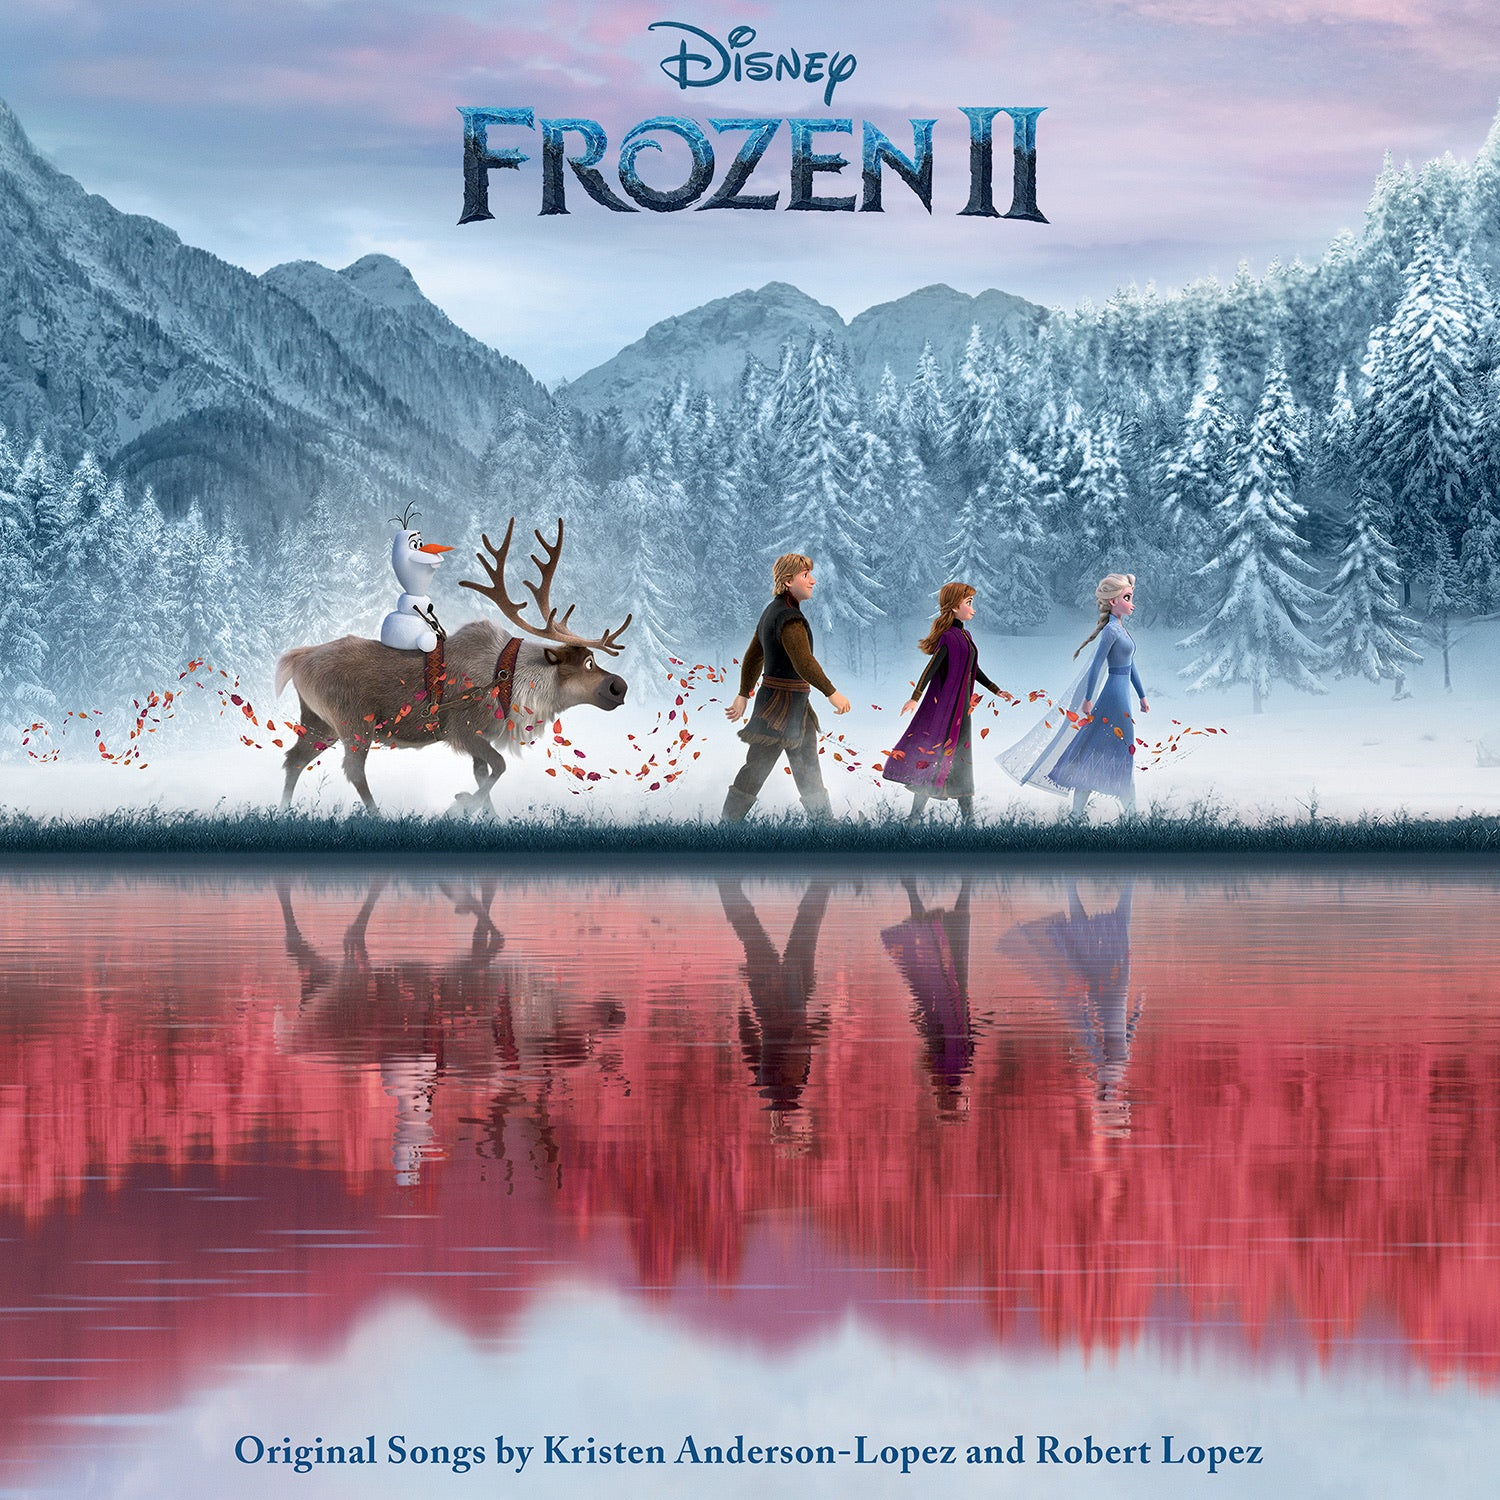 Frozen II (2) - Original Songs By Kristen Anderson-Lopez And Robert Lopez